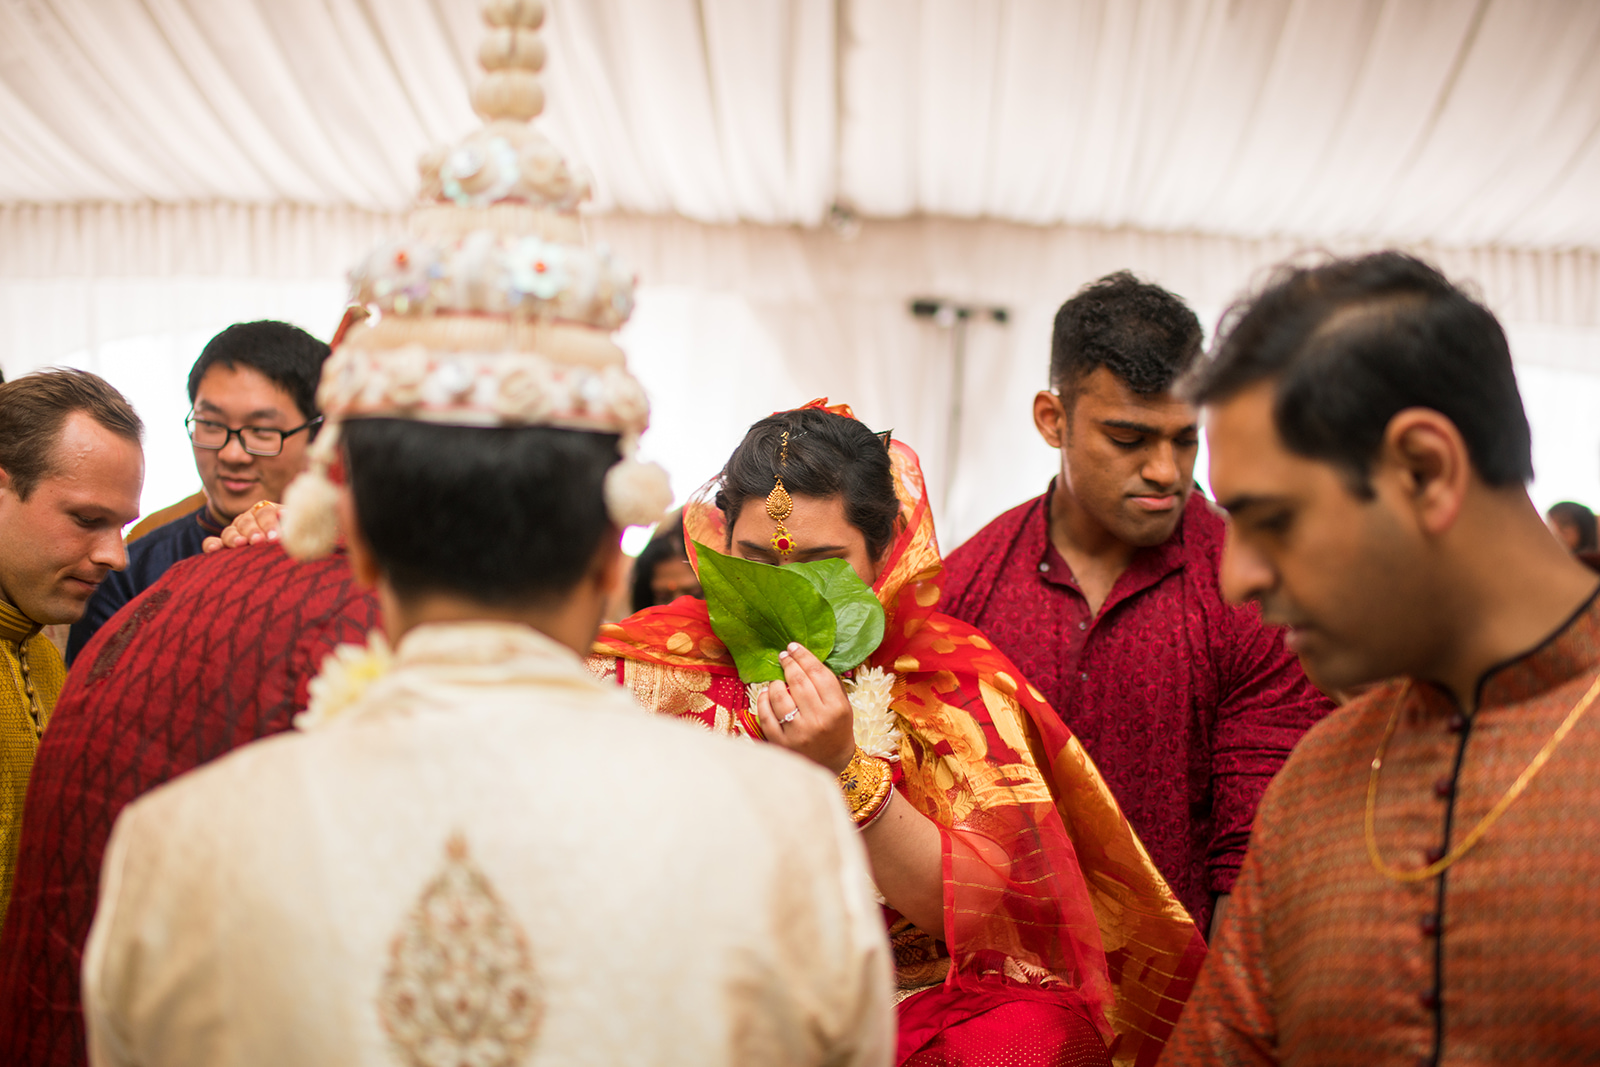 Le Cape Weddings - South Asian Wedding - Ishani and Sidhart - Ceremony-17.jpg